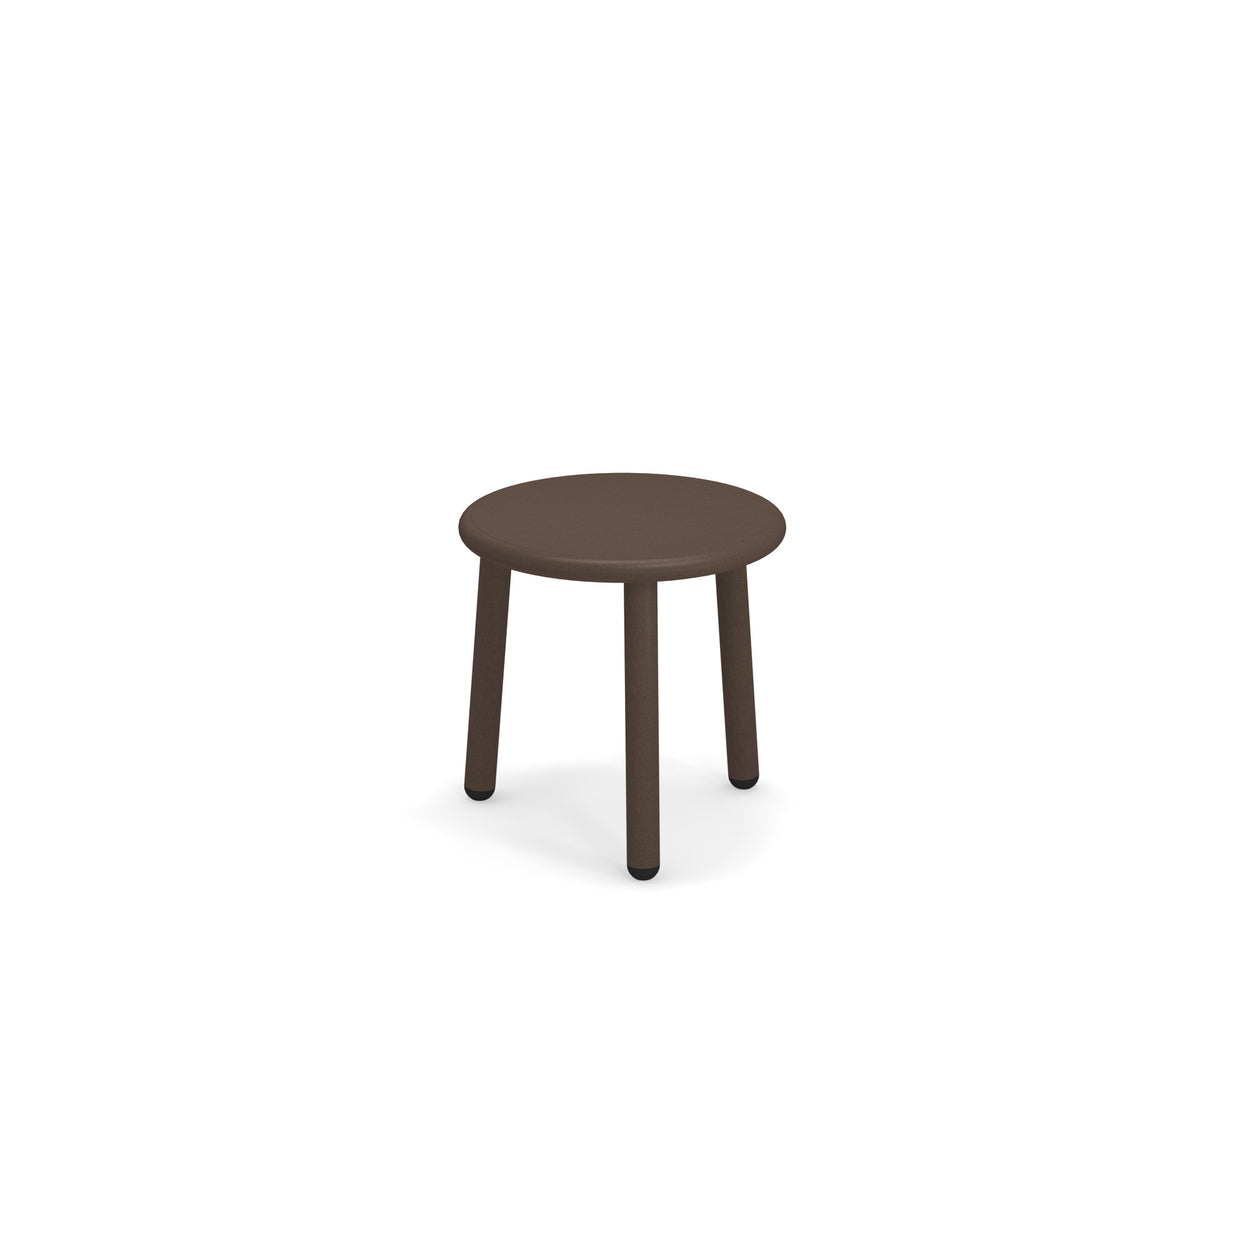 EMU Yard Round Coffee Table